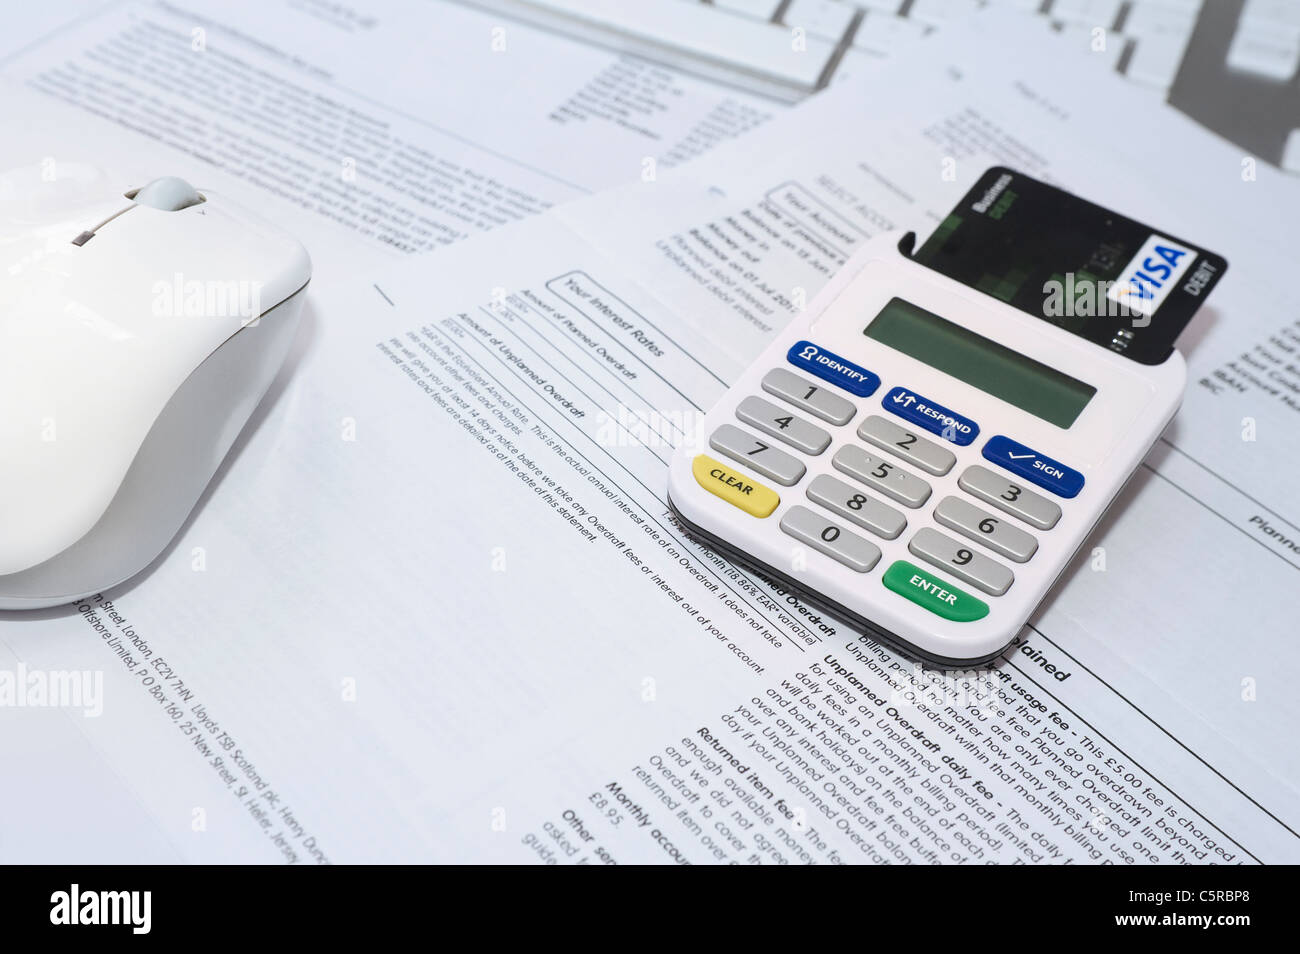 Internet Bank Card Reader with Card Inserted Sitting on Bank Statements with Other Credit Cards and Keyboard in - Stock Image